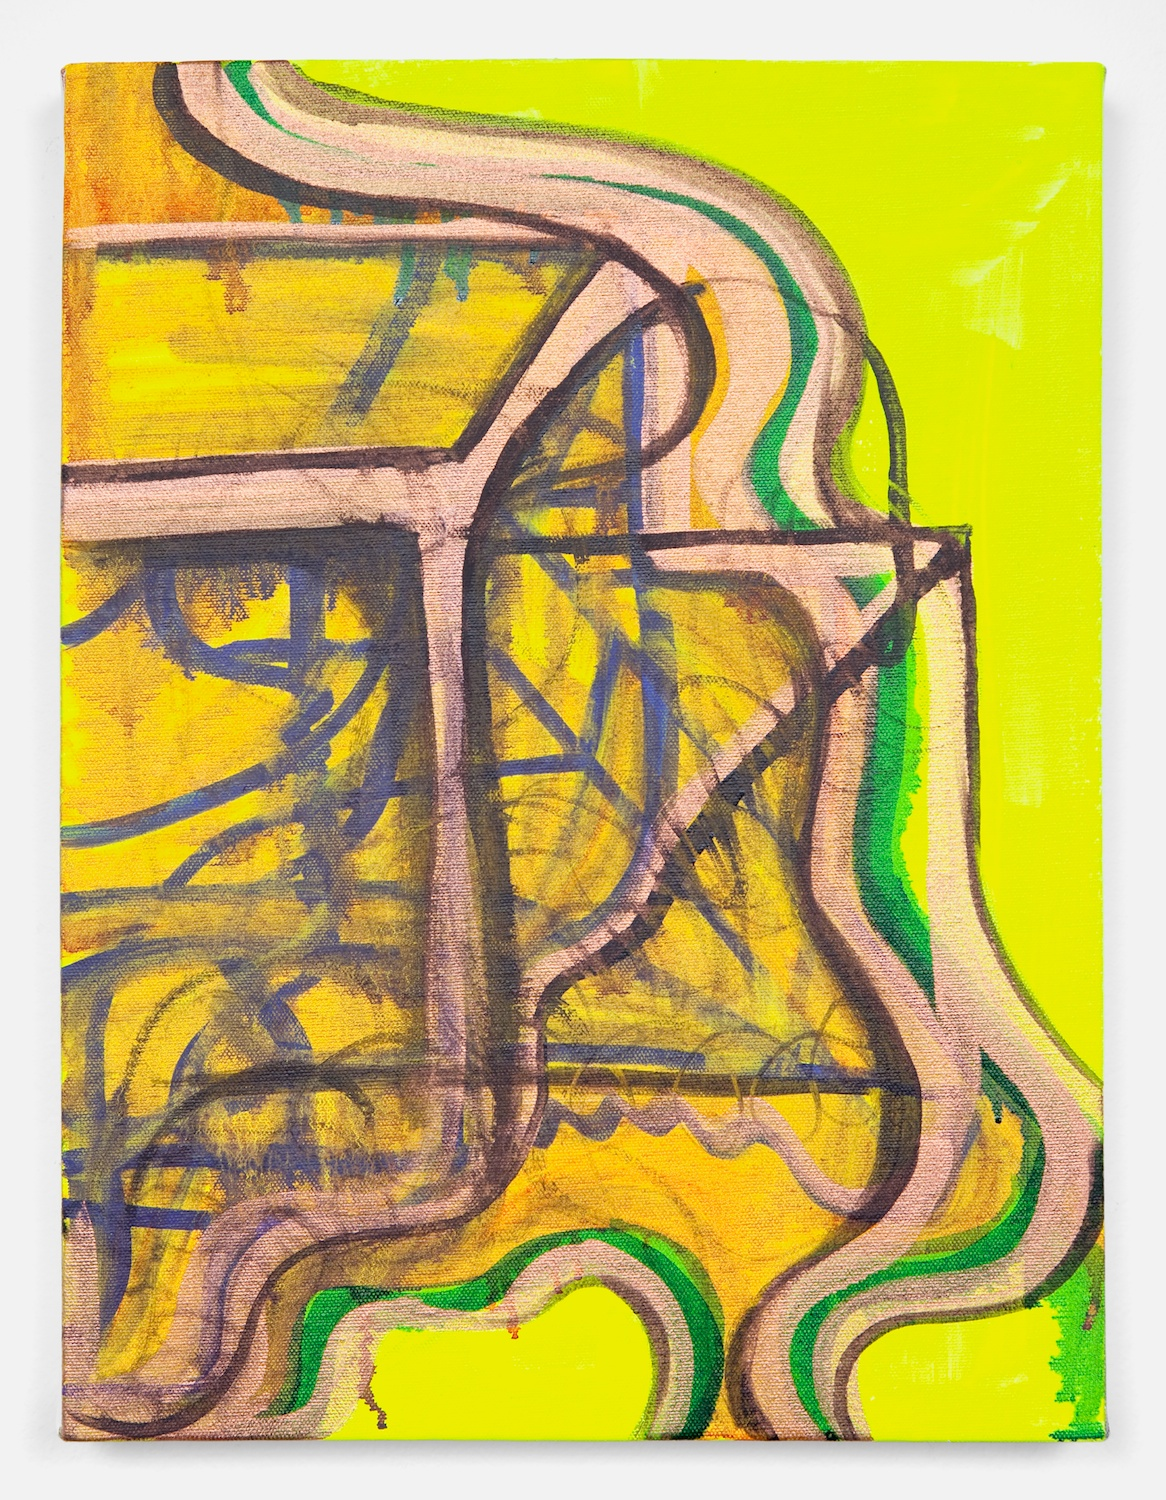 Joanne Greenbaum  Untitled  2011 Oil, acrylic and mixed media on linen 16h x 12w in JG039